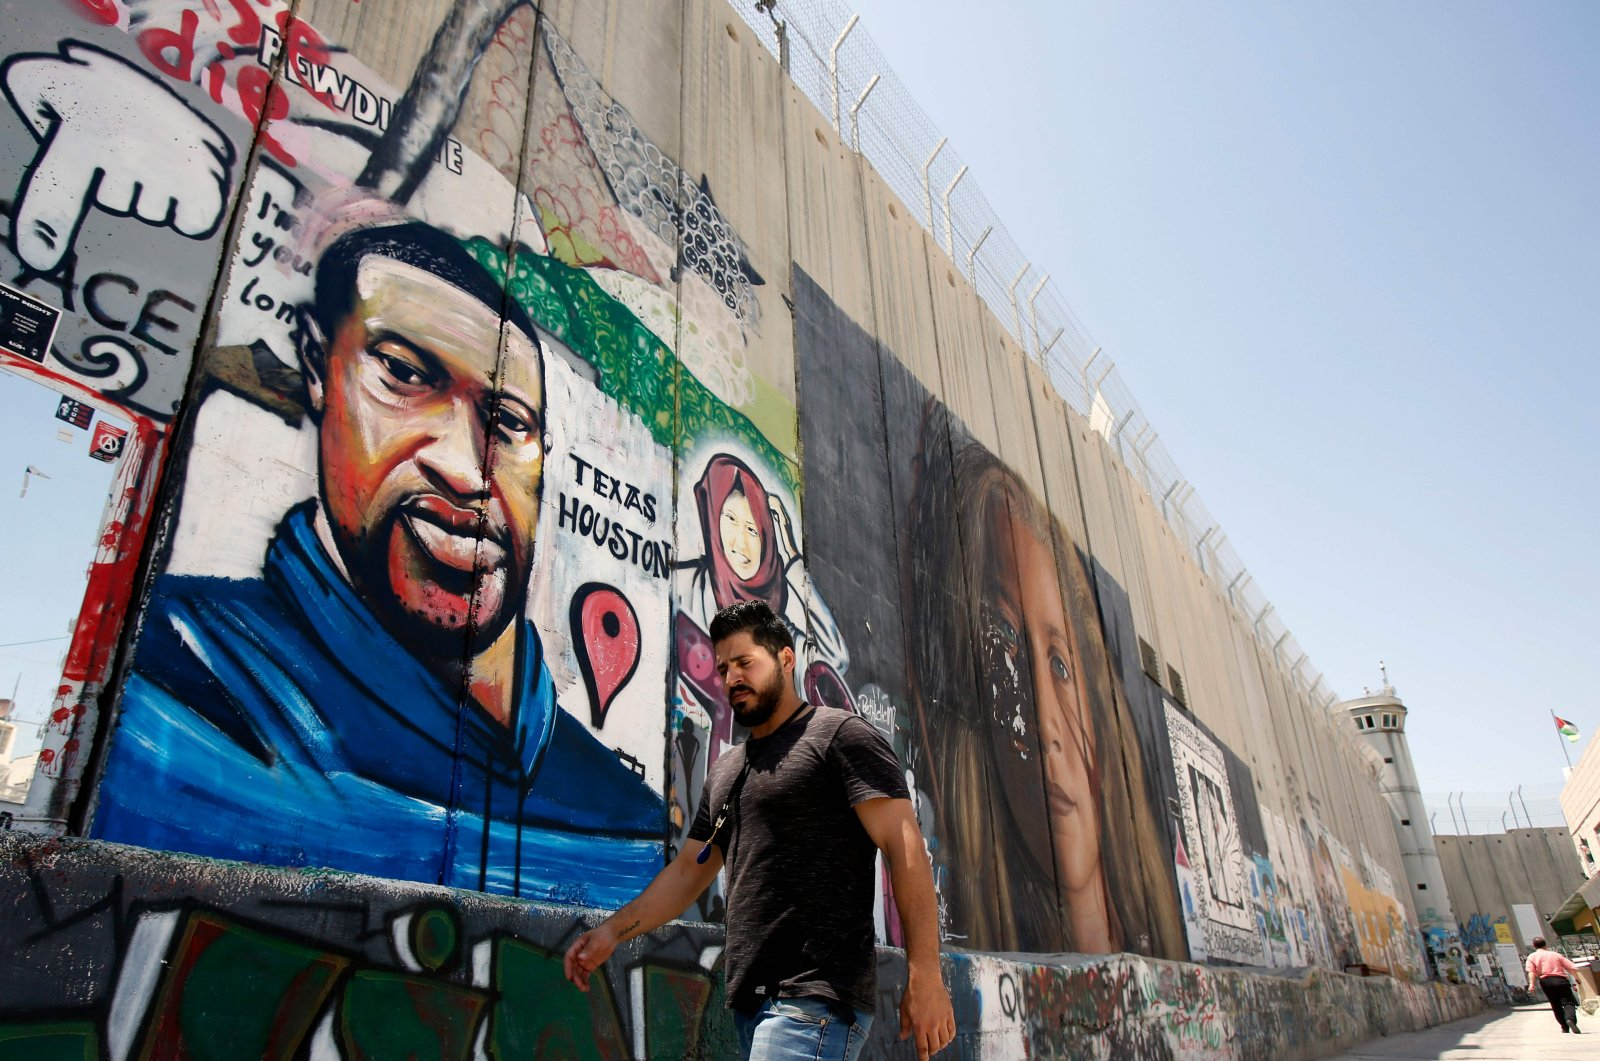 A Palestinian man walks past graffiti of George Floyd, an unarmed black man who died after a white policeman knelt on his neck during an arrest in the U.S., painted on a section of Israel's controversial separation barrier in the city of Bethlehem in the occupied West Bank, June 7, 2020. (AFP Photo)